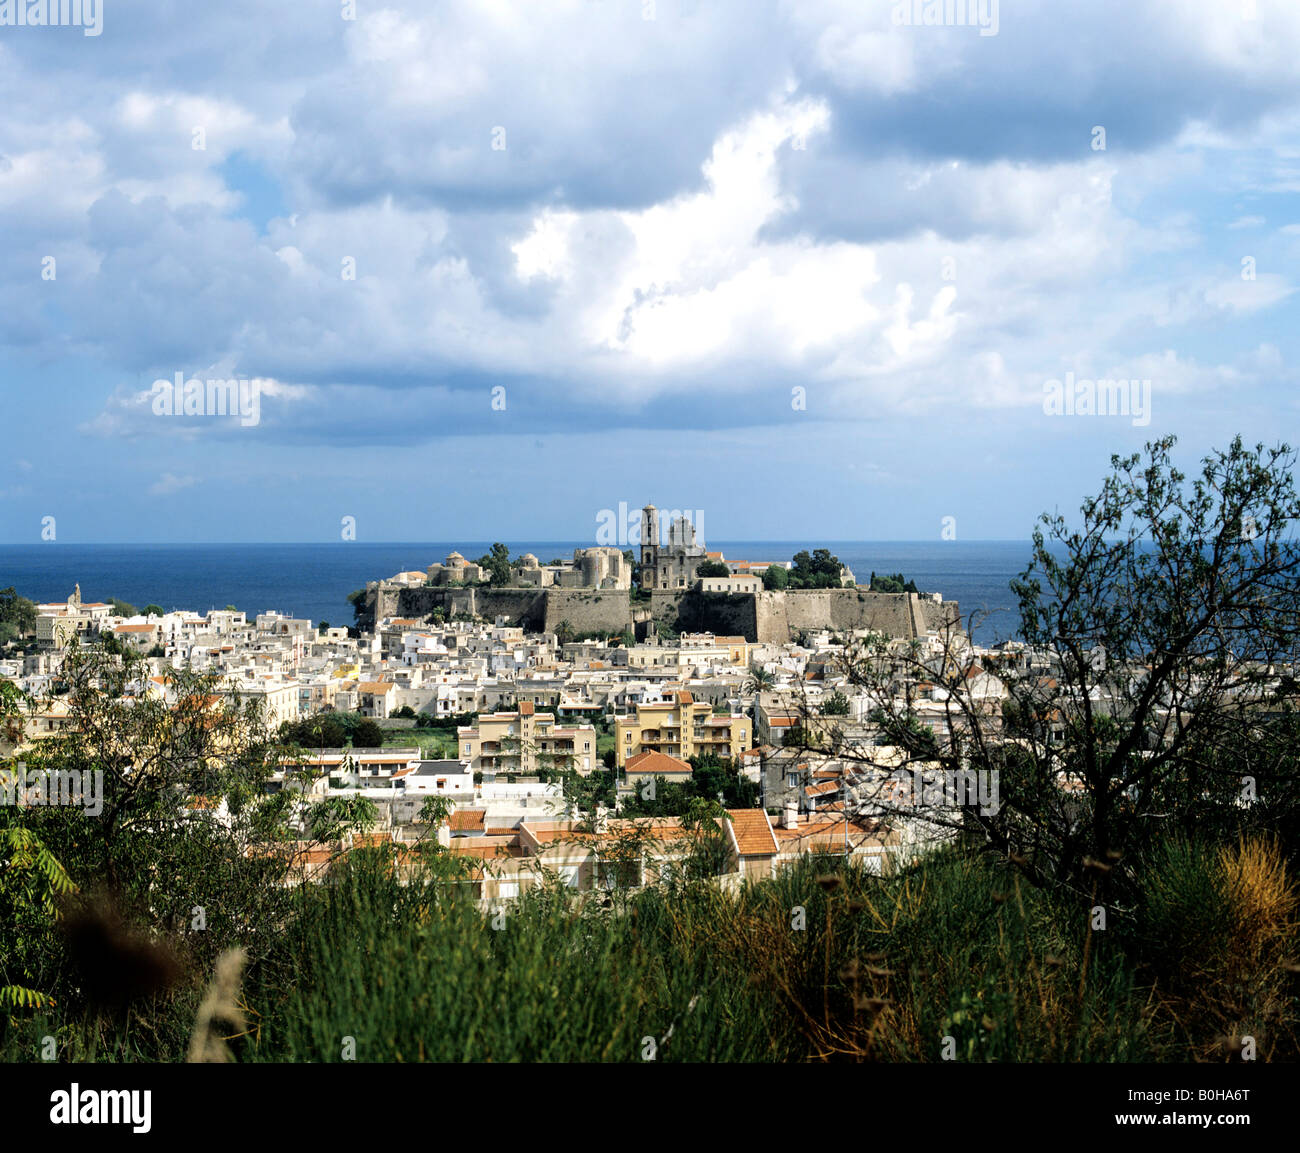 Lipari castle hill, Aeolian Islands, Sicily, Italy - Stock Image